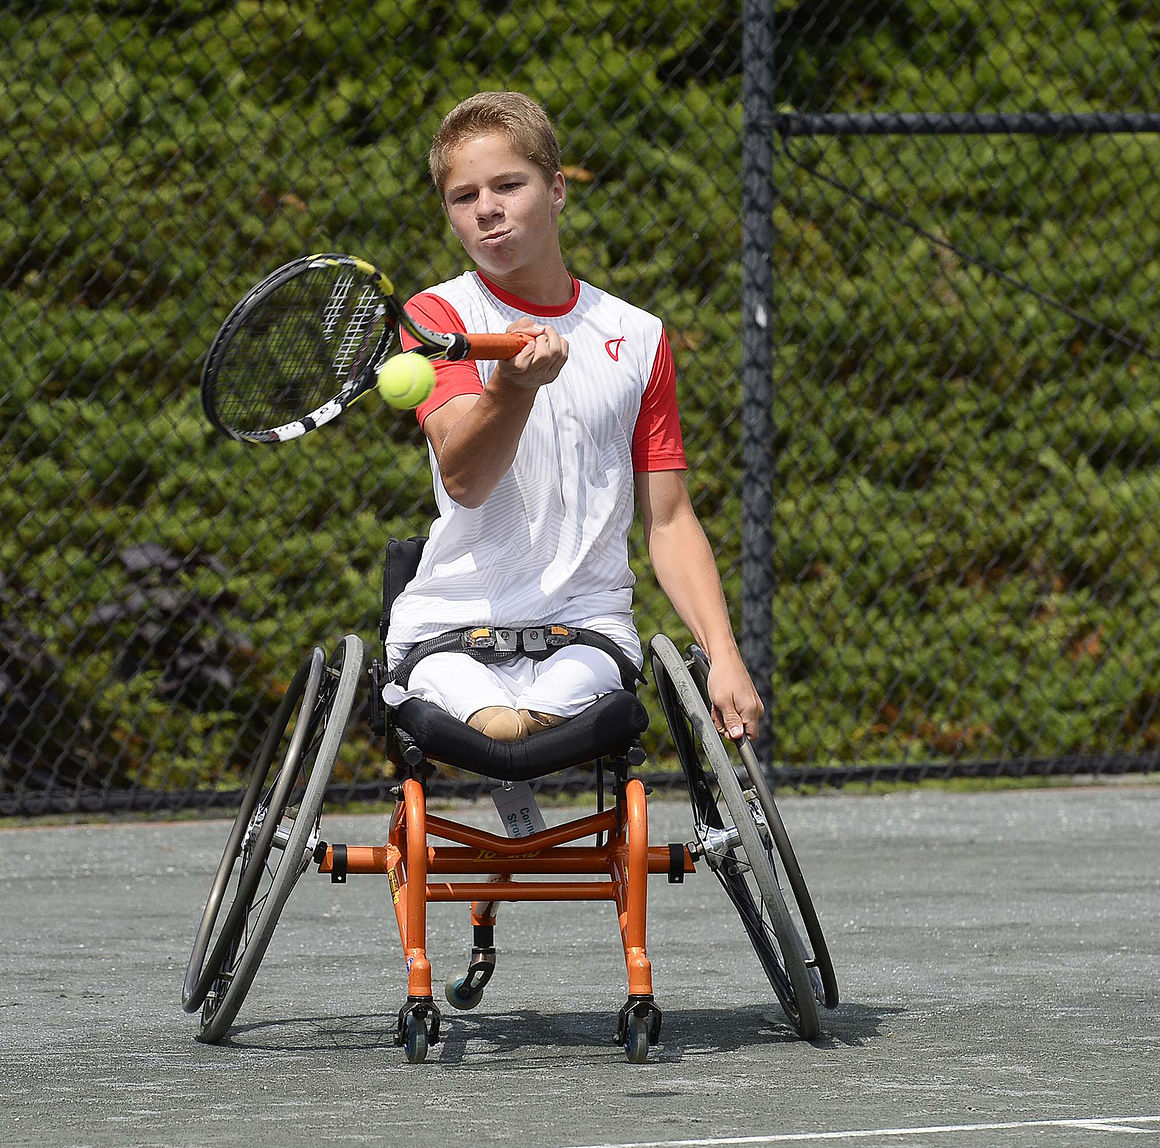 Inspiring teen among world's best wheelchair tennis players